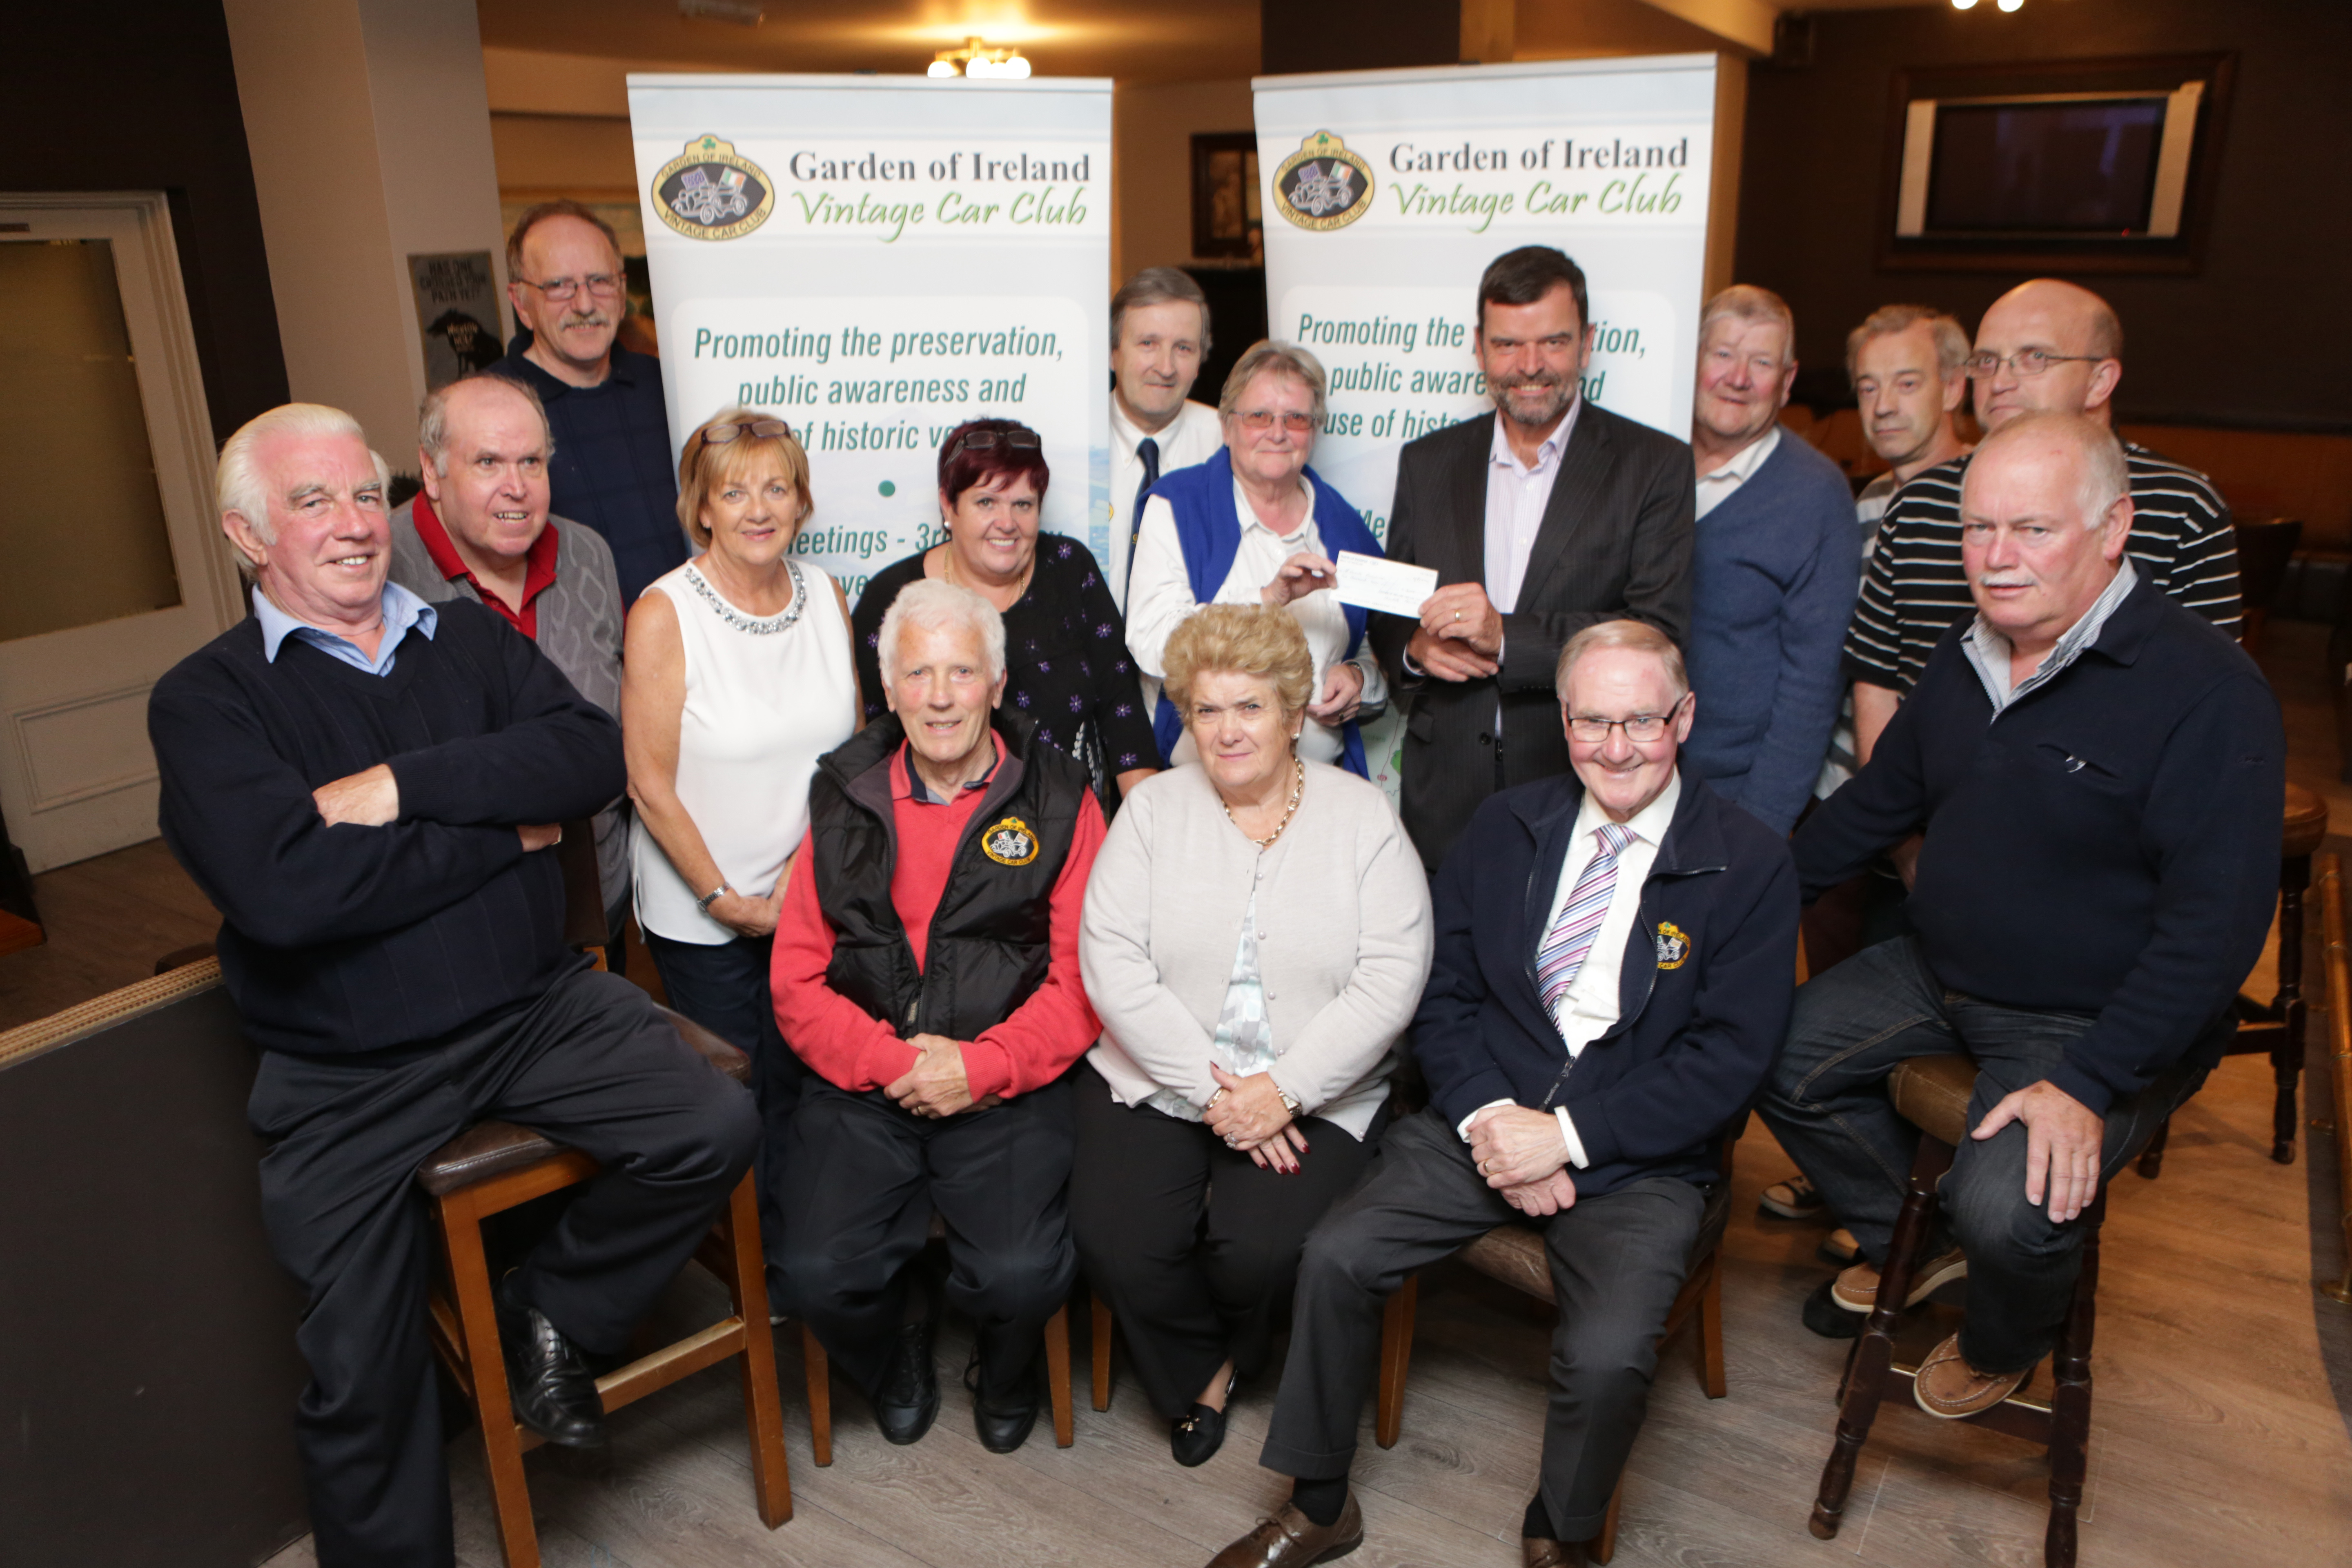 The Garden of Ireland Vintage Club present the cheque of the proceeds from the Tom Kennedy Memorial Car Show to St Vincents Foundation: Eileen Kennedy presents the cheque to John Hickey CEO